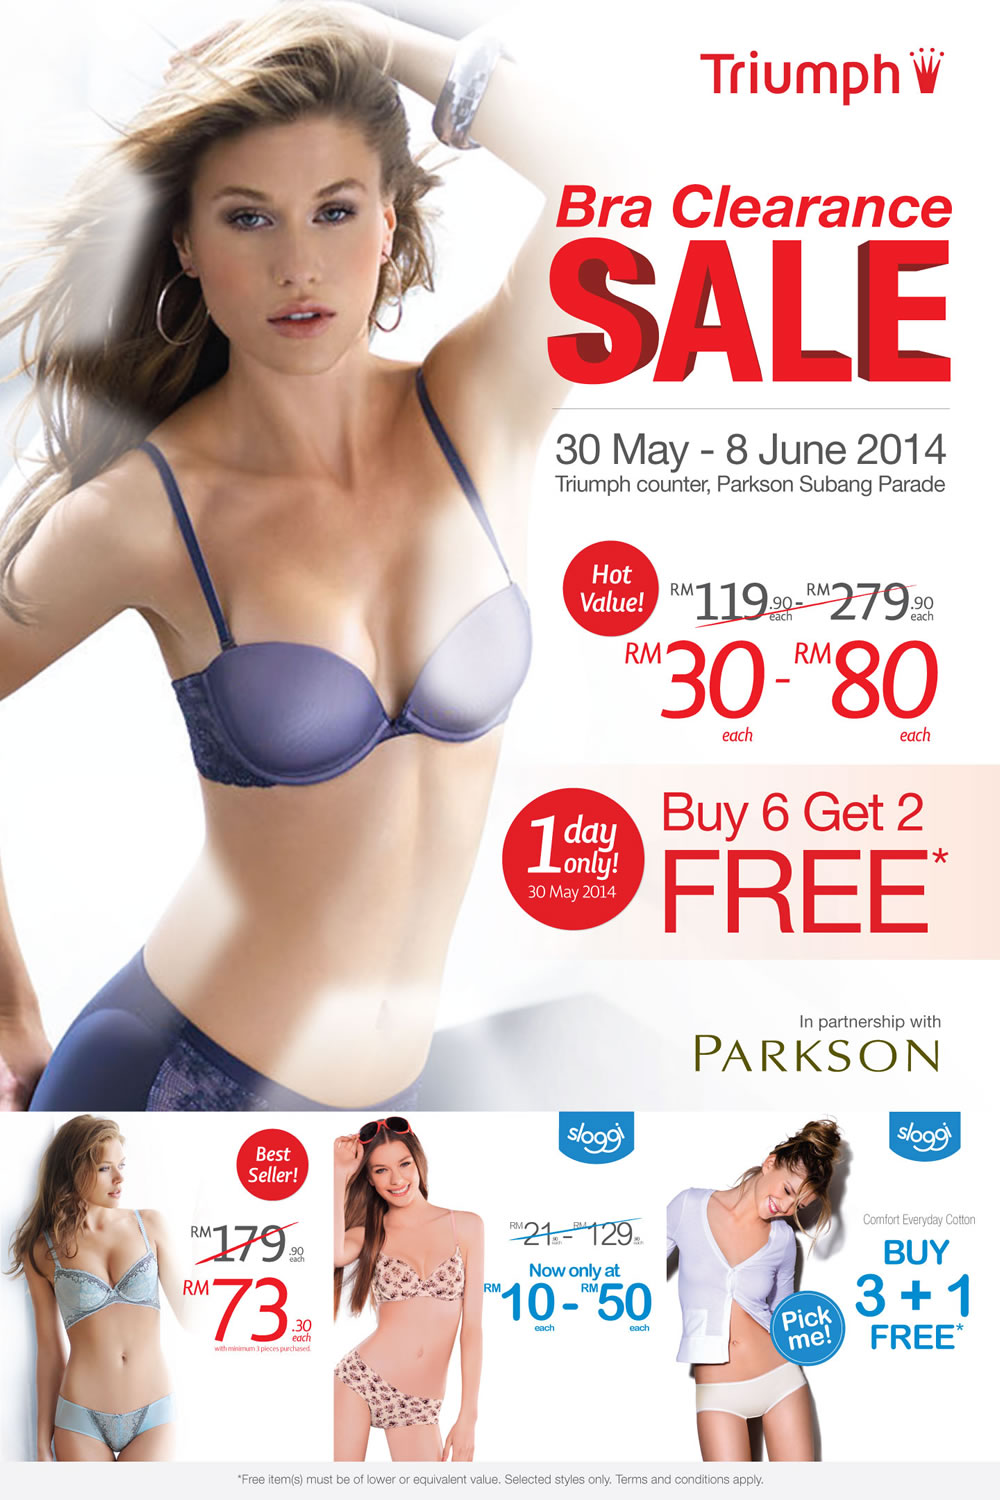 TRIUMPH Bra Clearance Sale 30 May - 8 June 2014